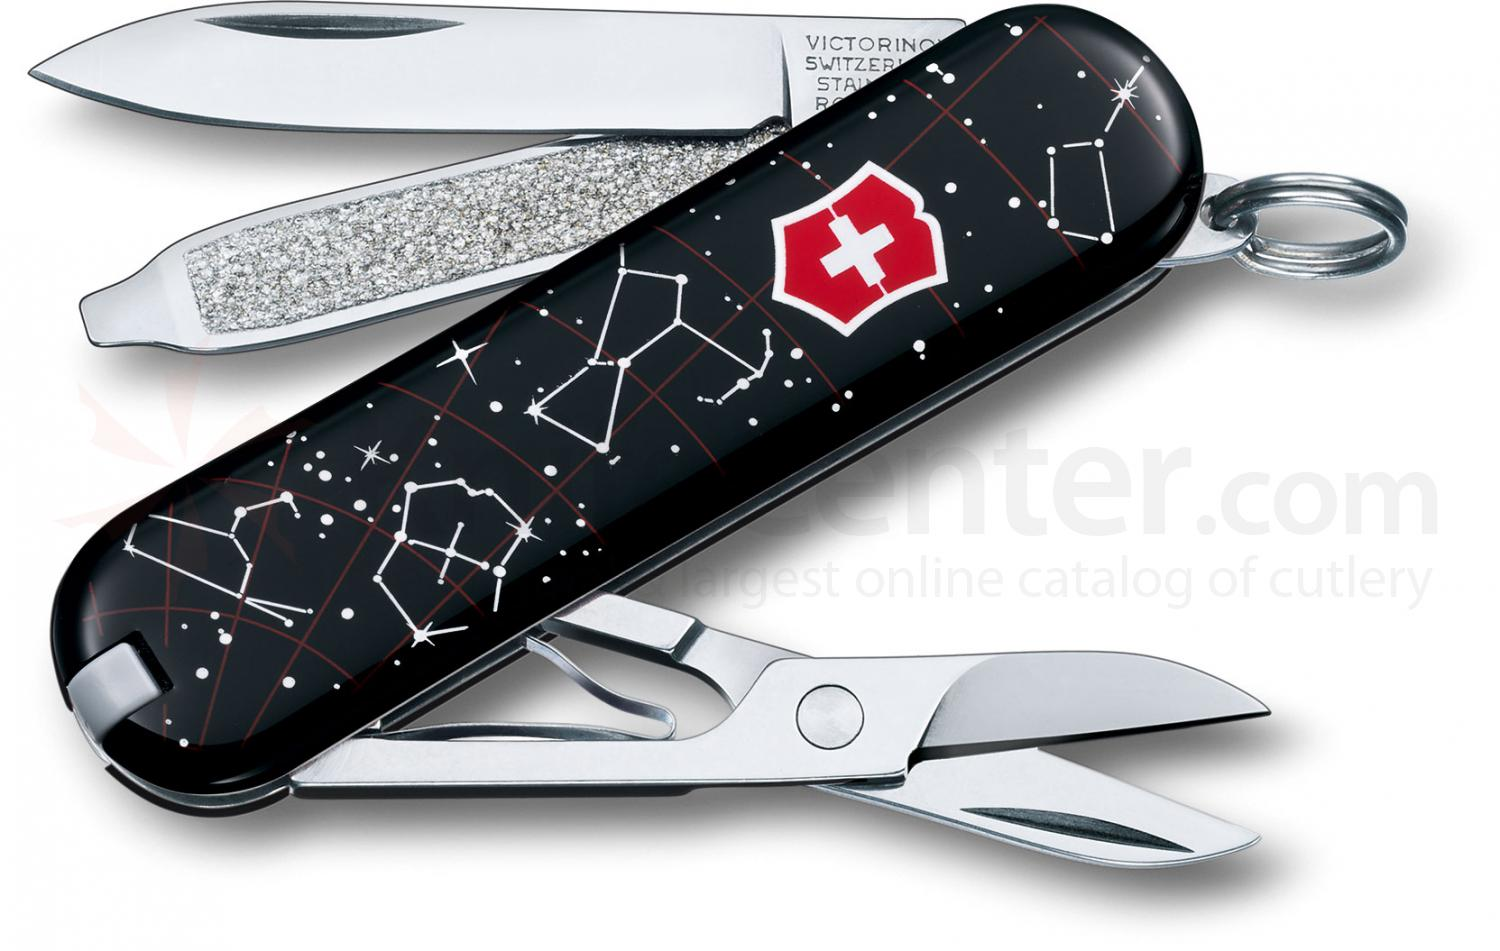 Victorinox limited edition huntsman swiss army knife year of the.